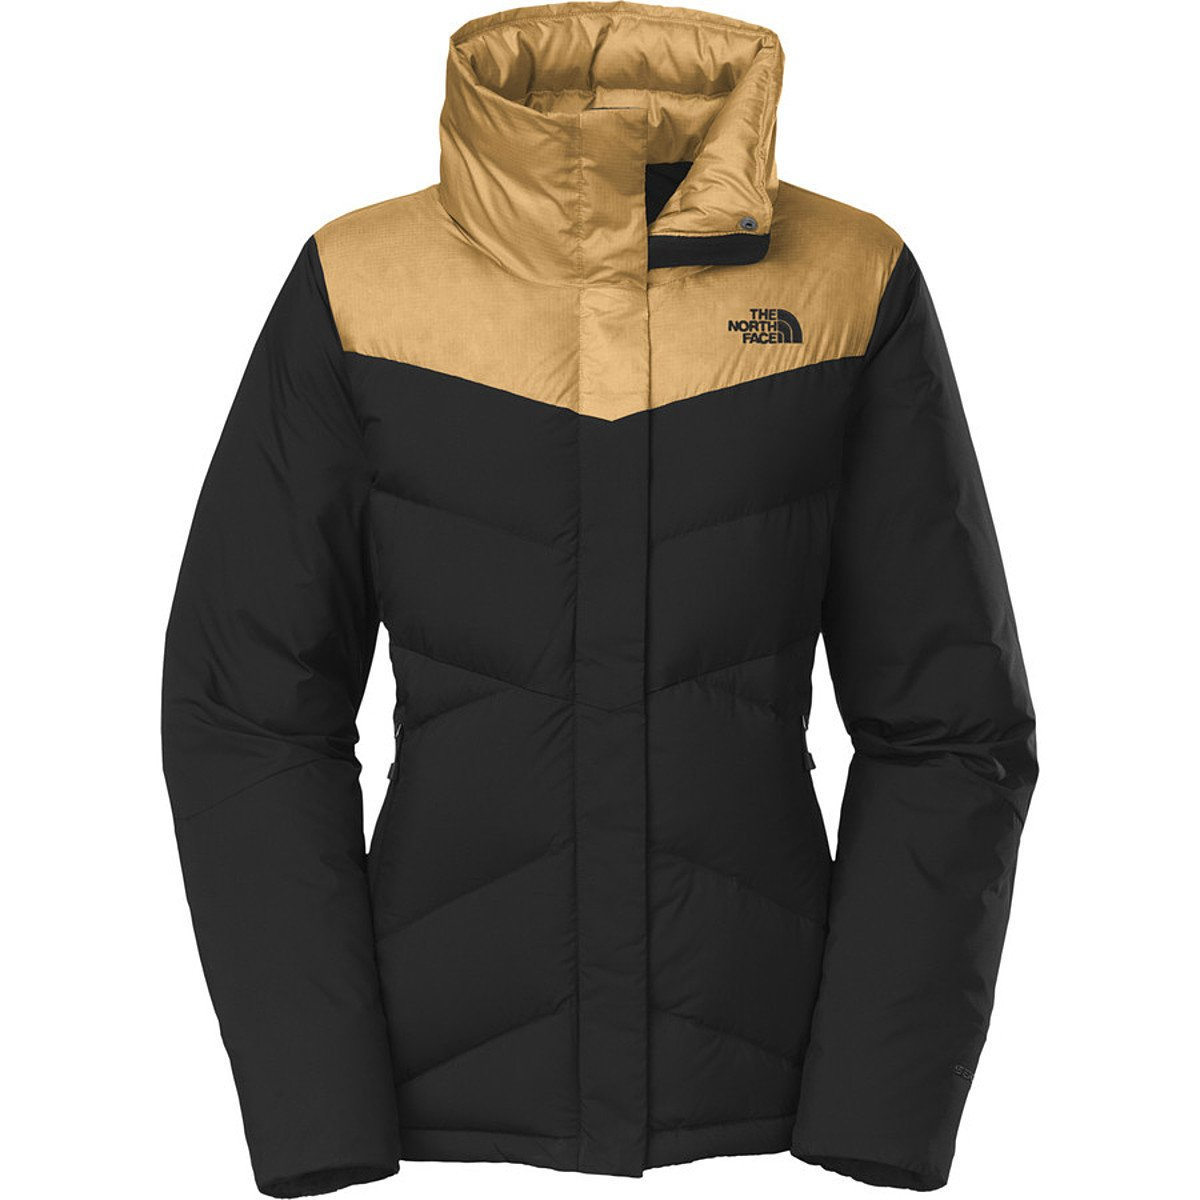 Amazon.com : The North Face Kailash Jacket For Women Size SMALL ...